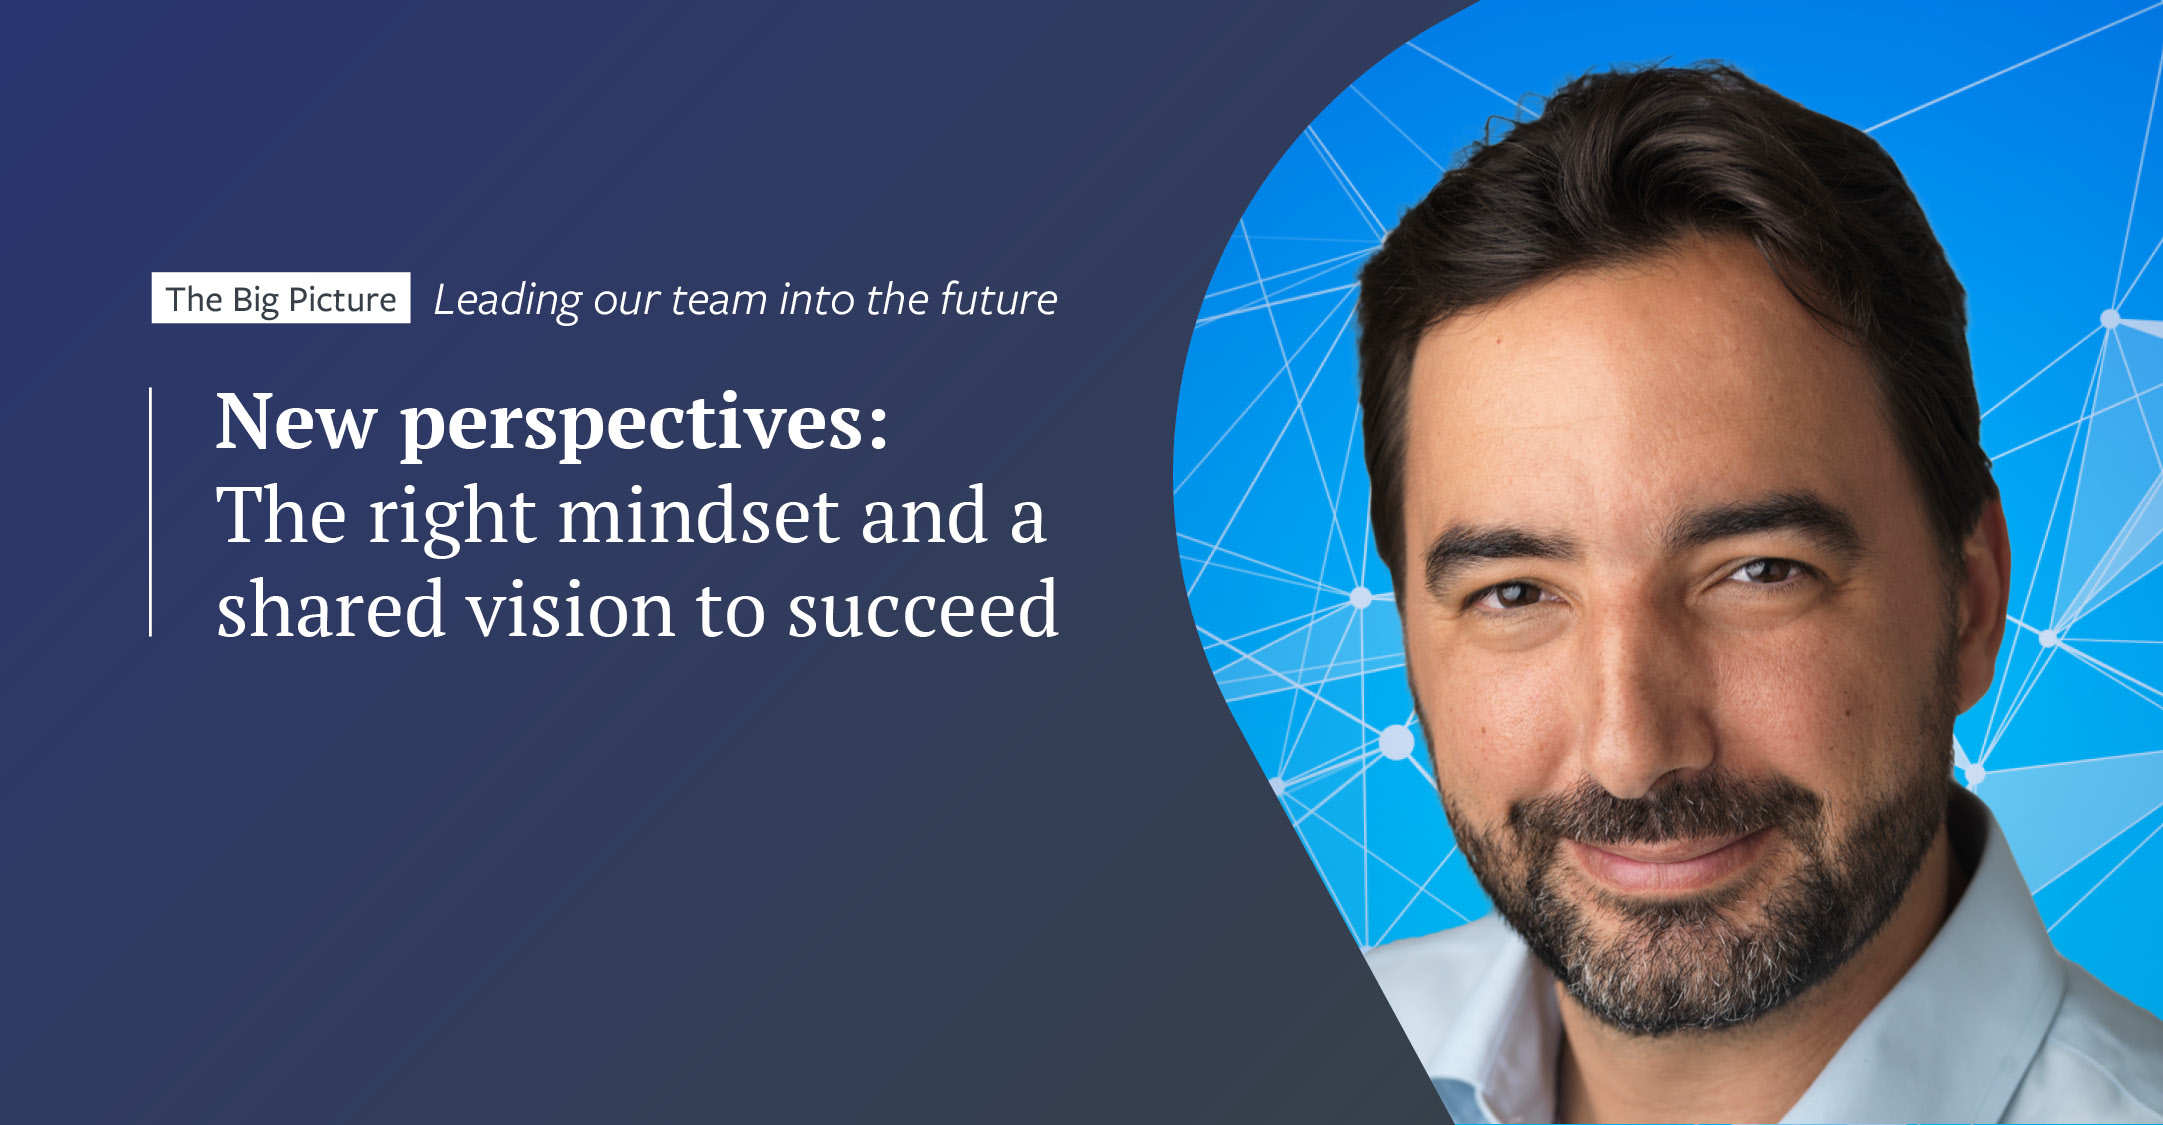 New perspectives, the right mindset and a shared vision to succeed